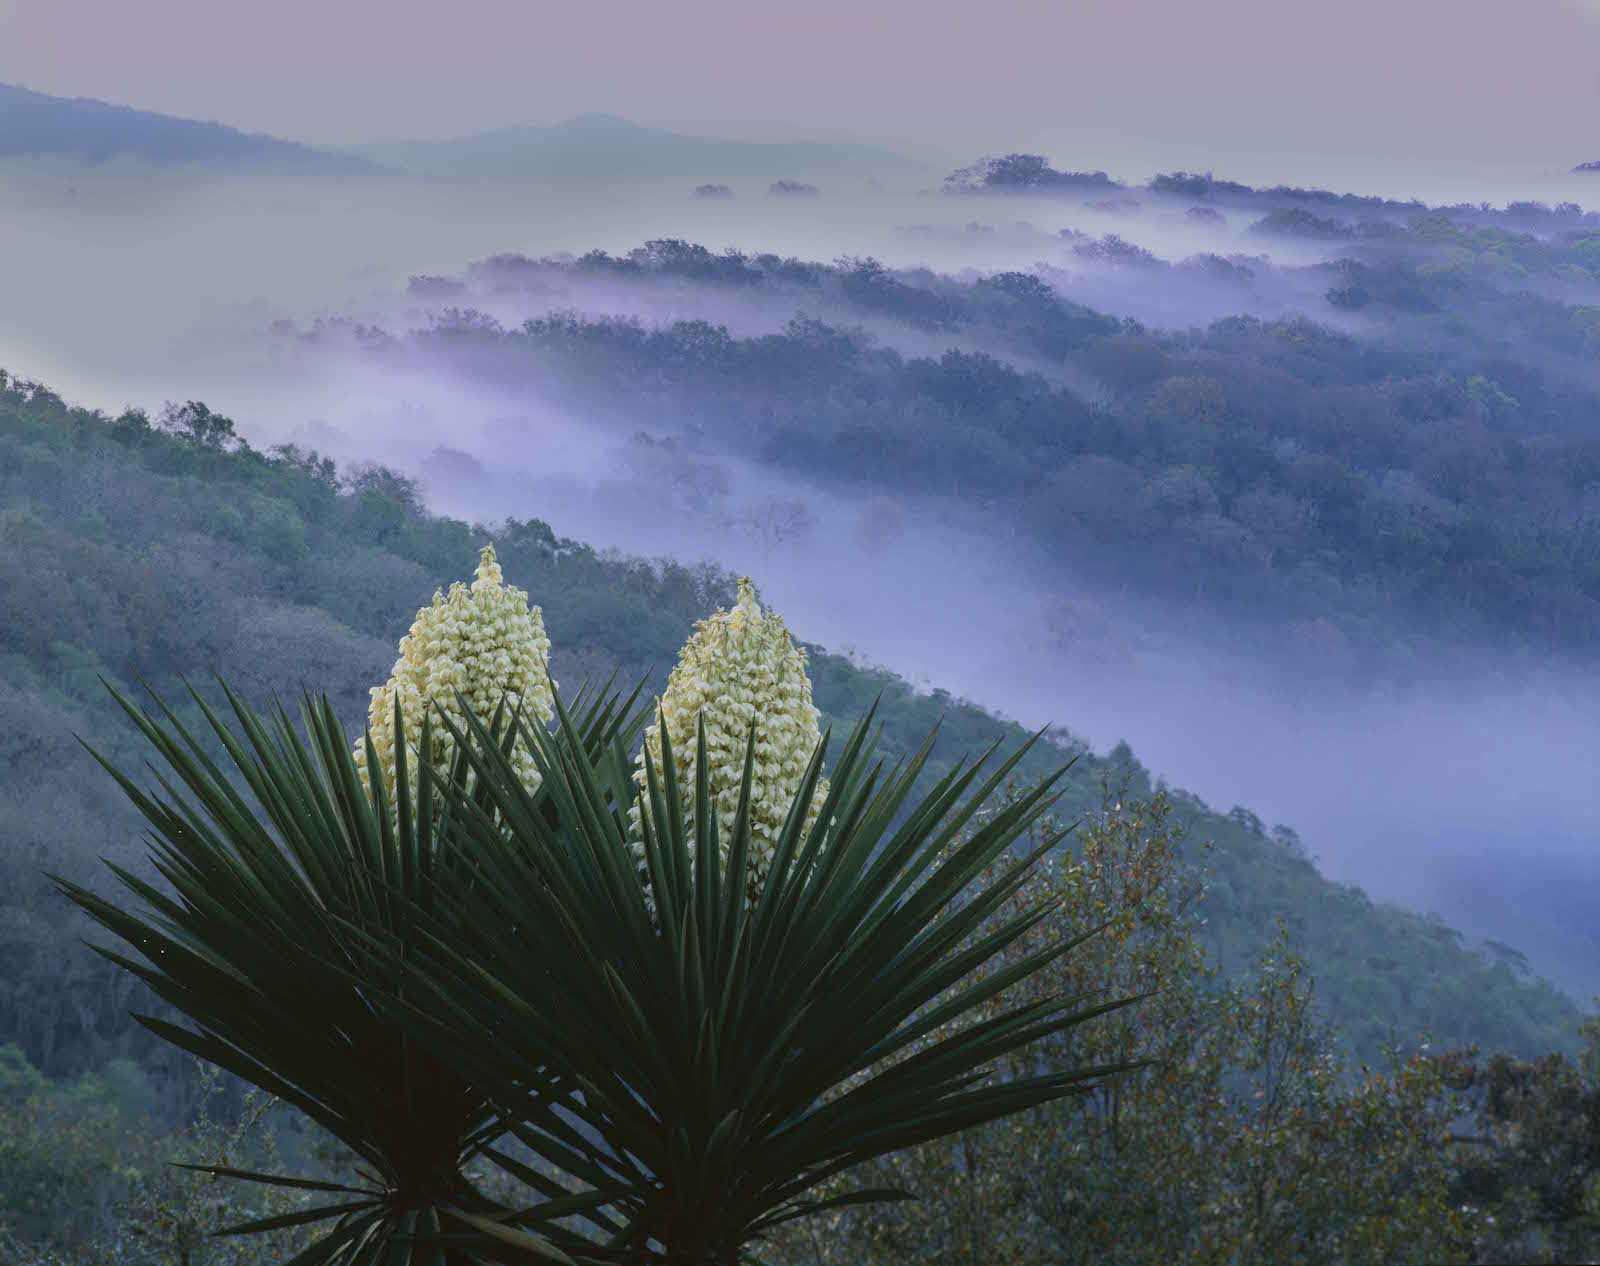 021001-0101-00   IN           Tamaulipas, Sierra Tamaulipas, Mexico / Flowering Yucca, Yucca carnerosana, as fog pours through the thick forested mountain ridges at dawn. 204H3                                                                                                                4x5   H            Orig